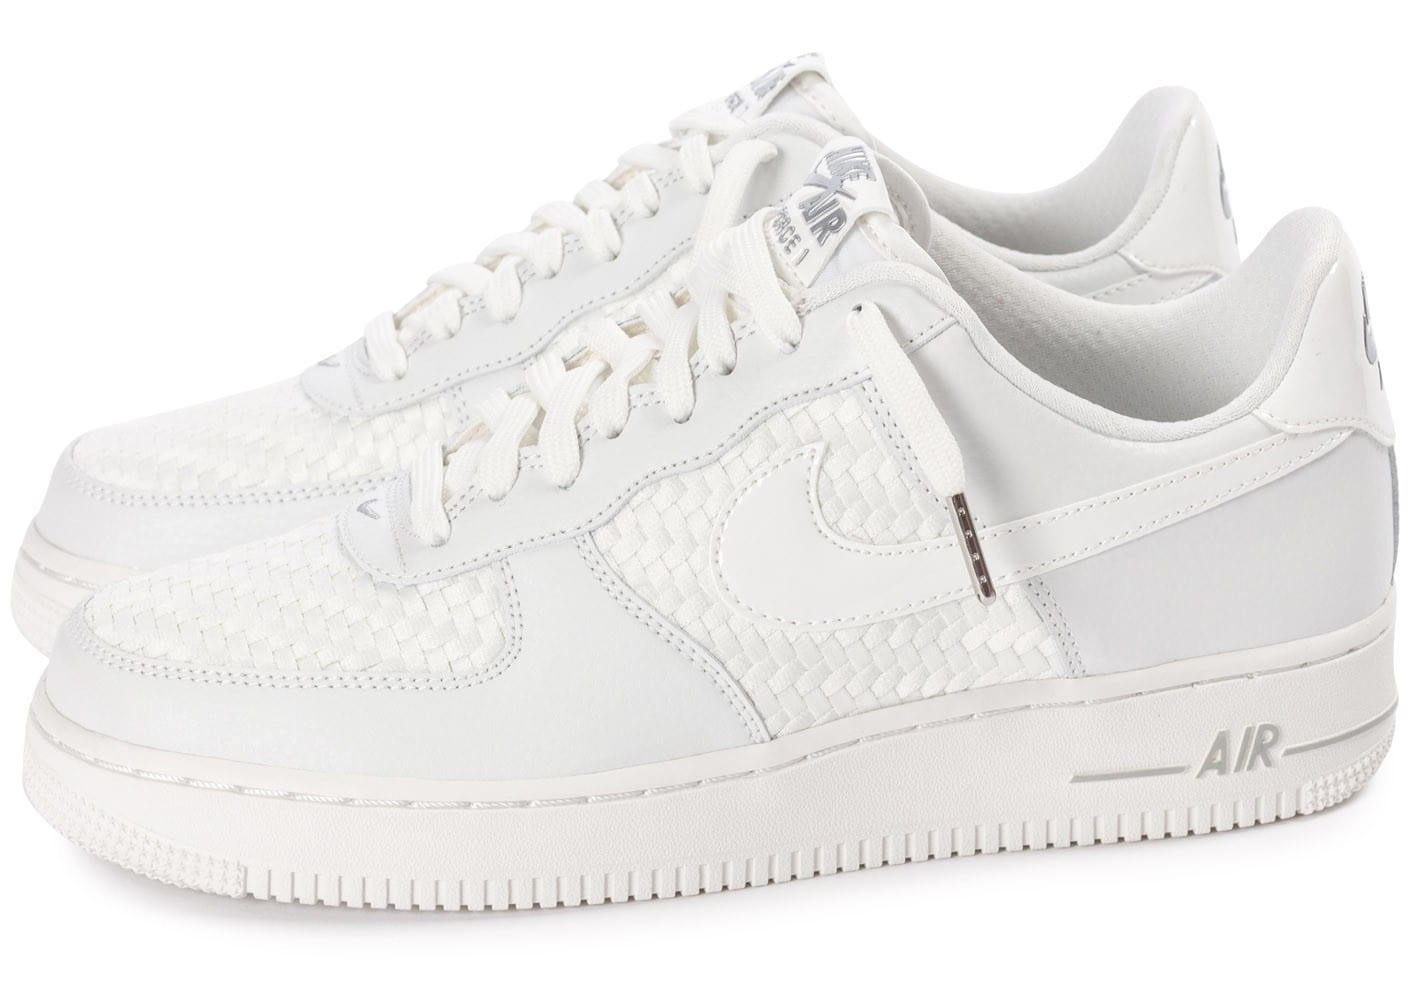 nike air force 1 lv8 low blanche chaussures homme. Black Bedroom Furniture Sets. Home Design Ideas